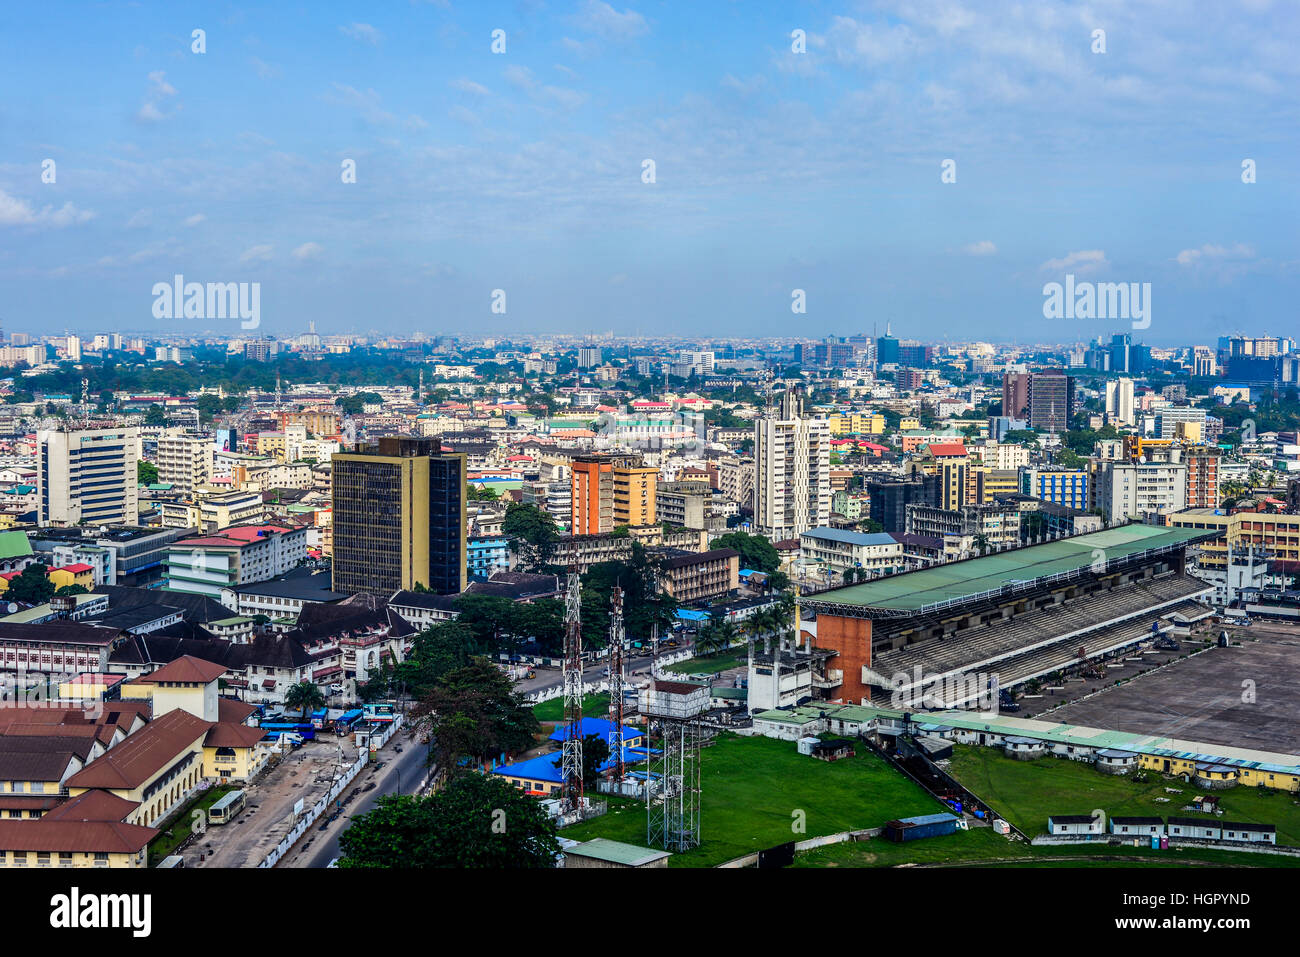 An aeerial view of Lagos Island, Nigeria - Stock Image